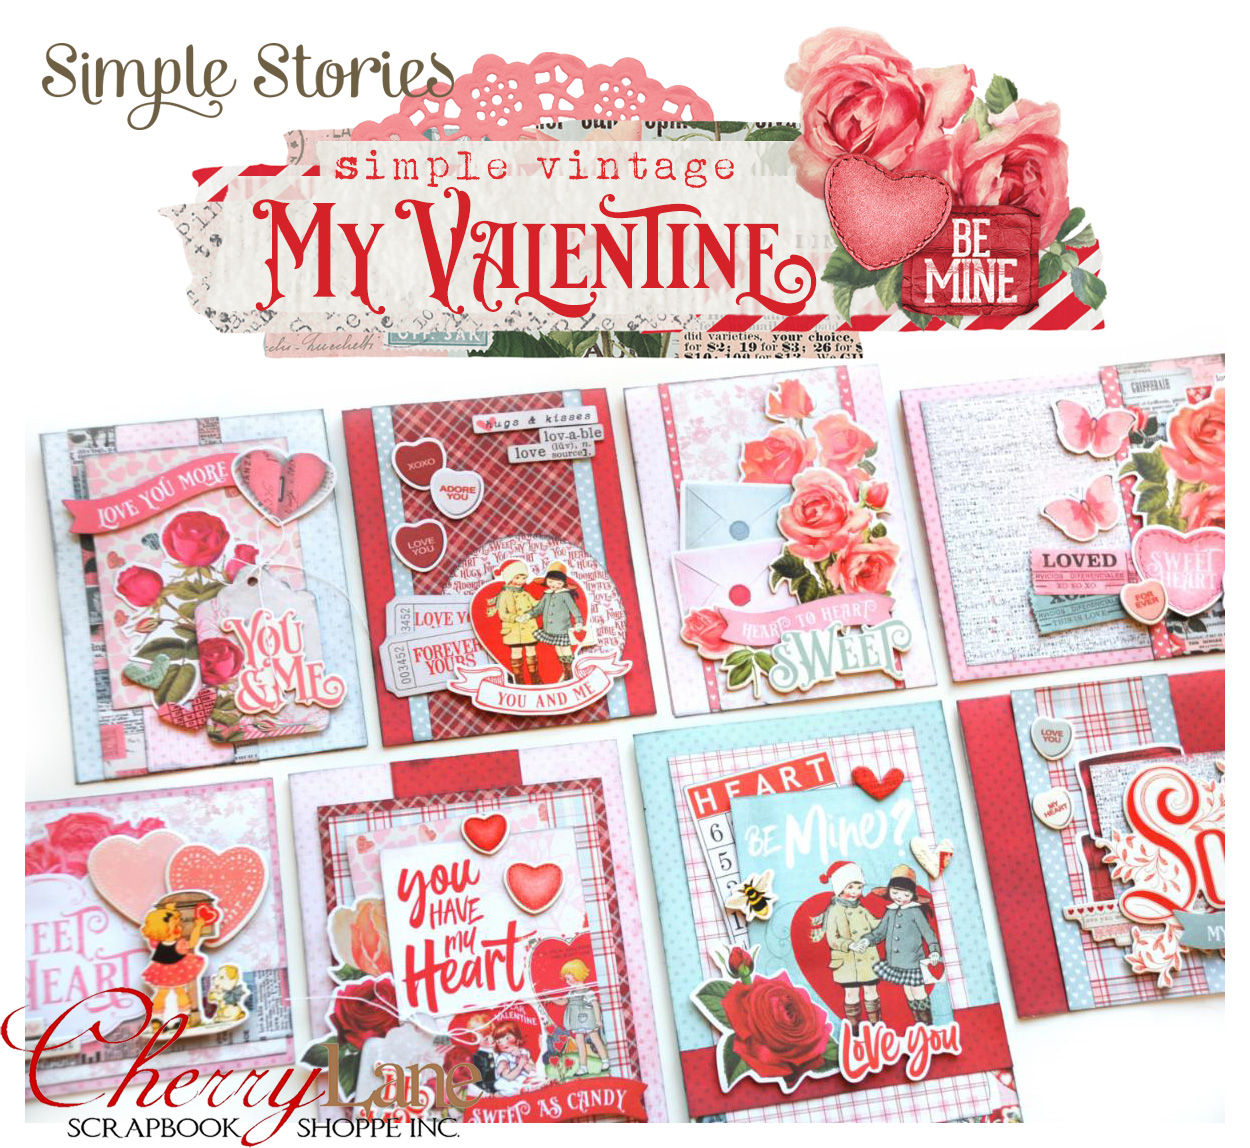 SSI Simple Vintage Valentine Cards